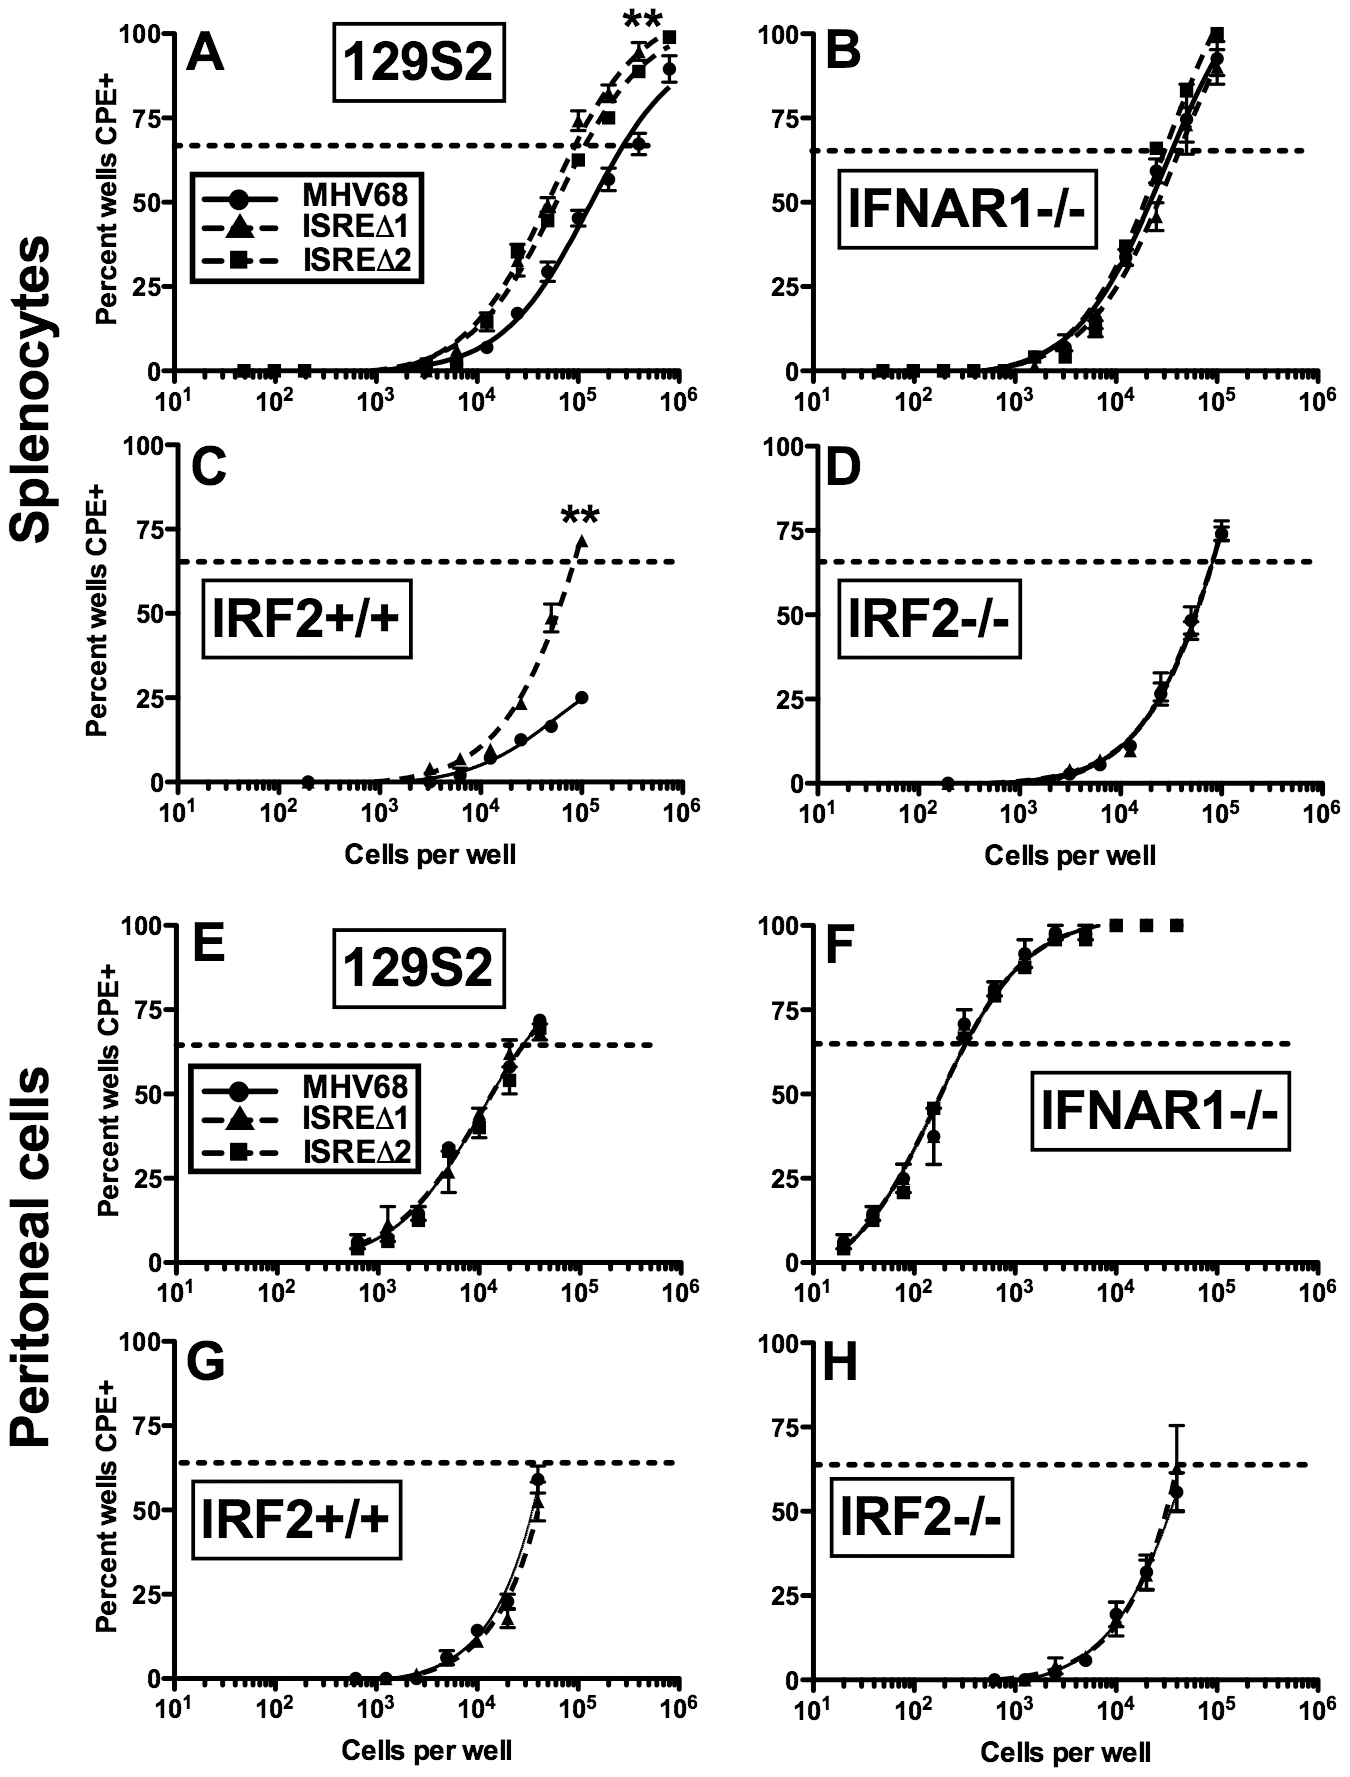 The M2 ISRE requires IFNAR1 and IRF2 to represses viral reactivation from latent splenocytes.